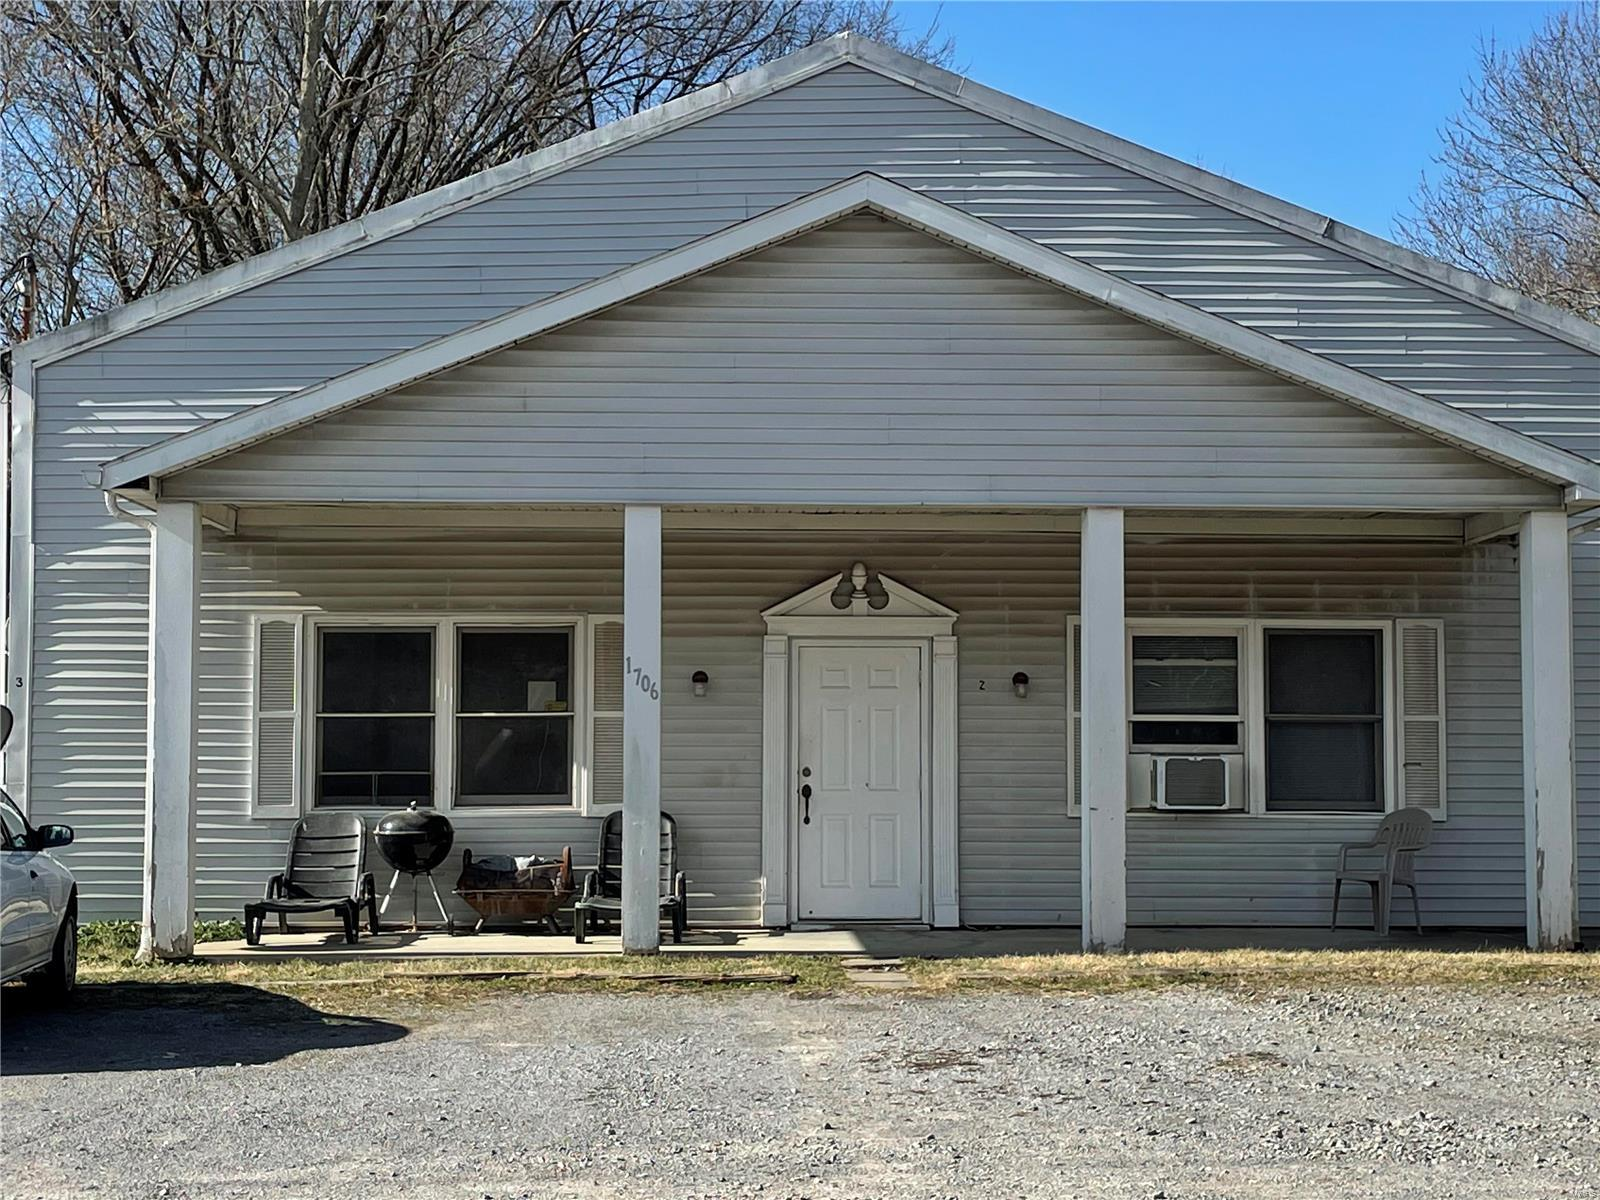 1706 N Russell Property Photo - Marion, IL real estate listing